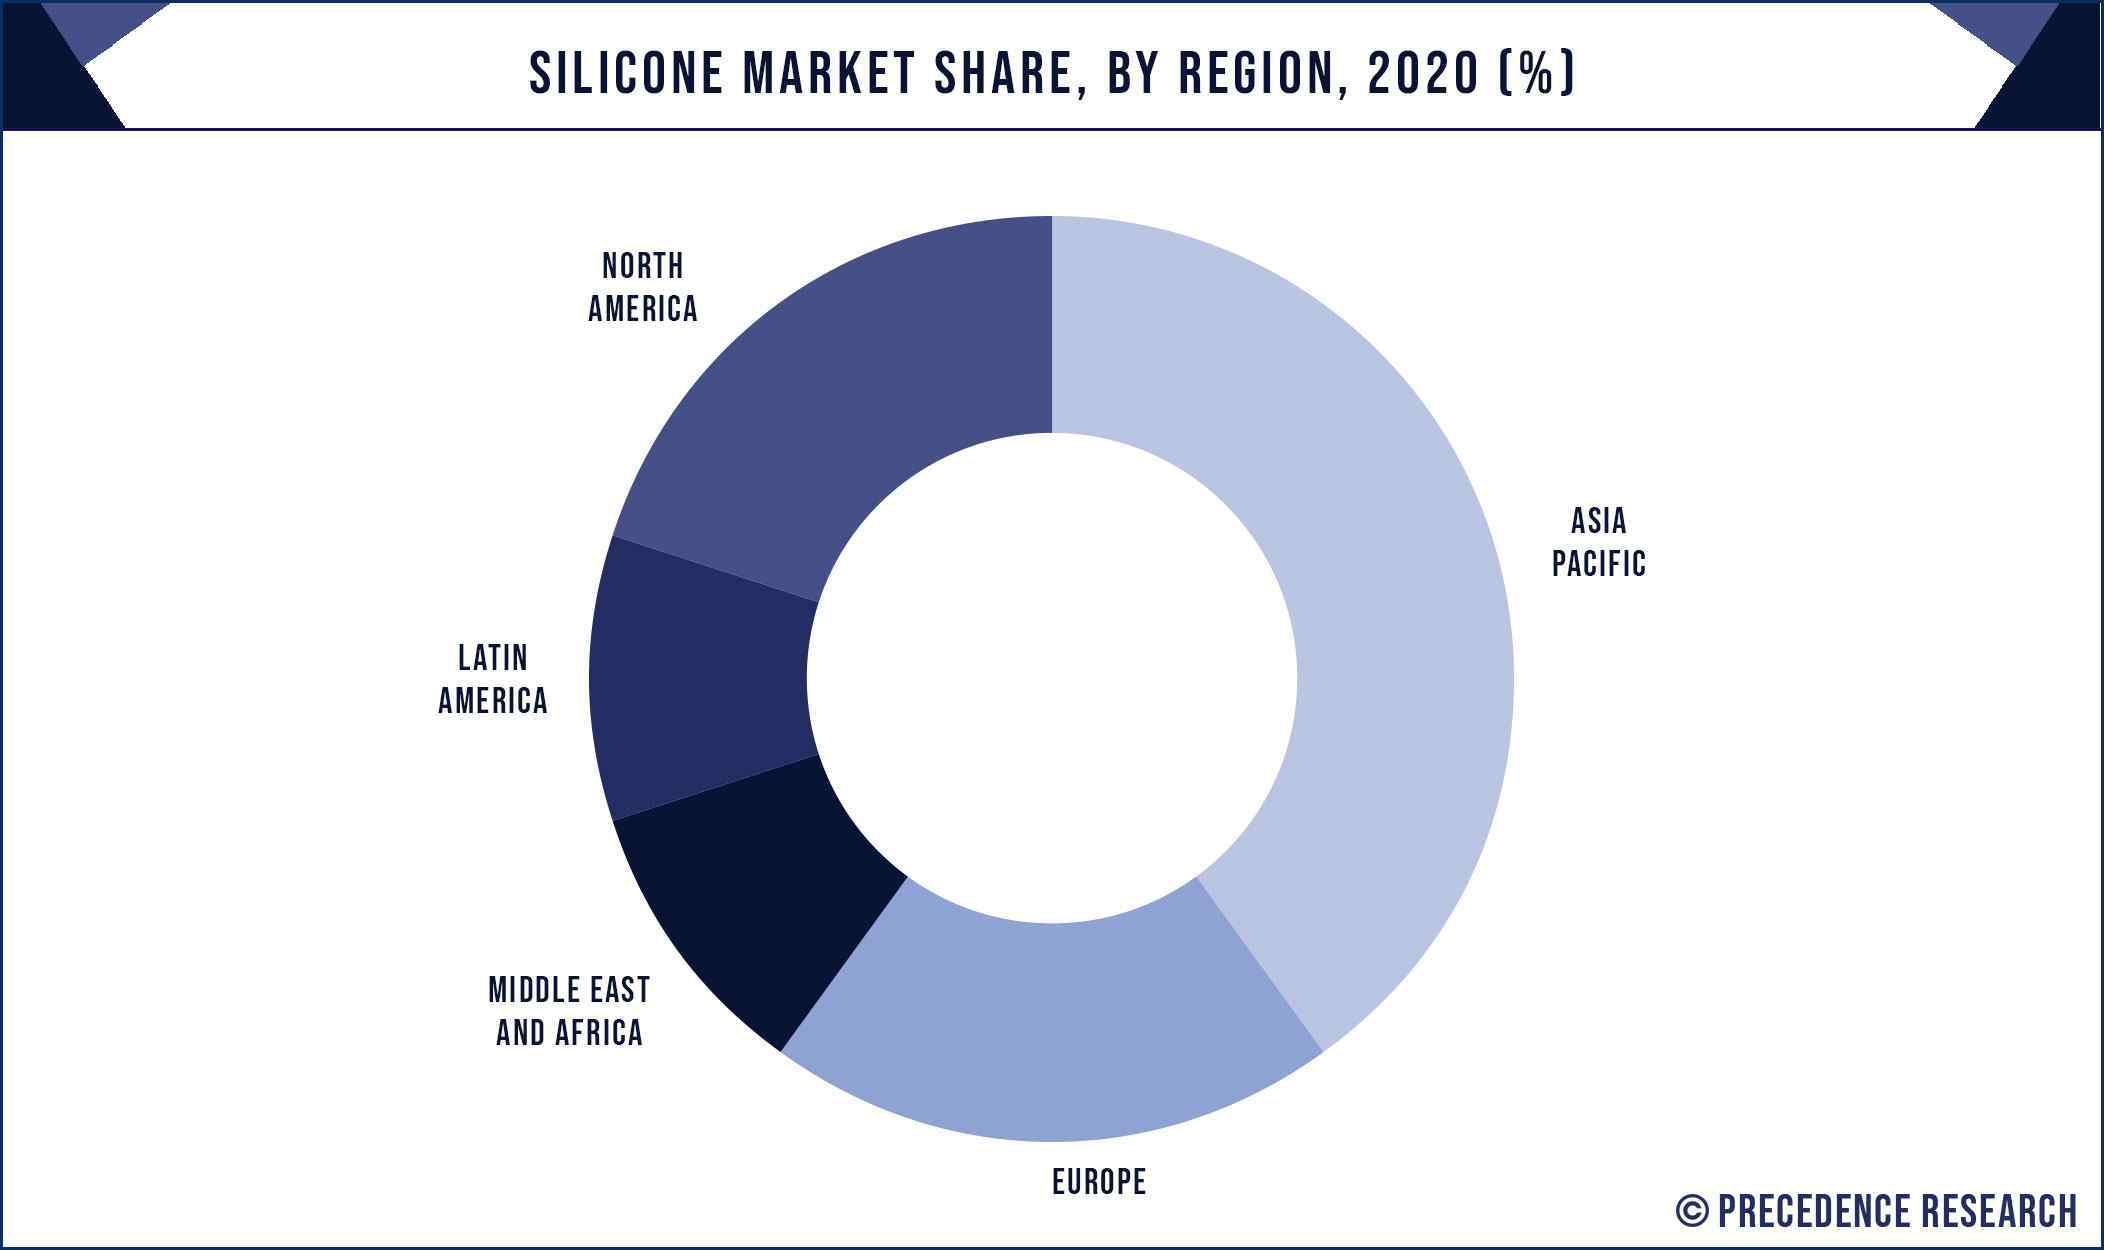 Silicone Market Share, By Region, 2020 (%)